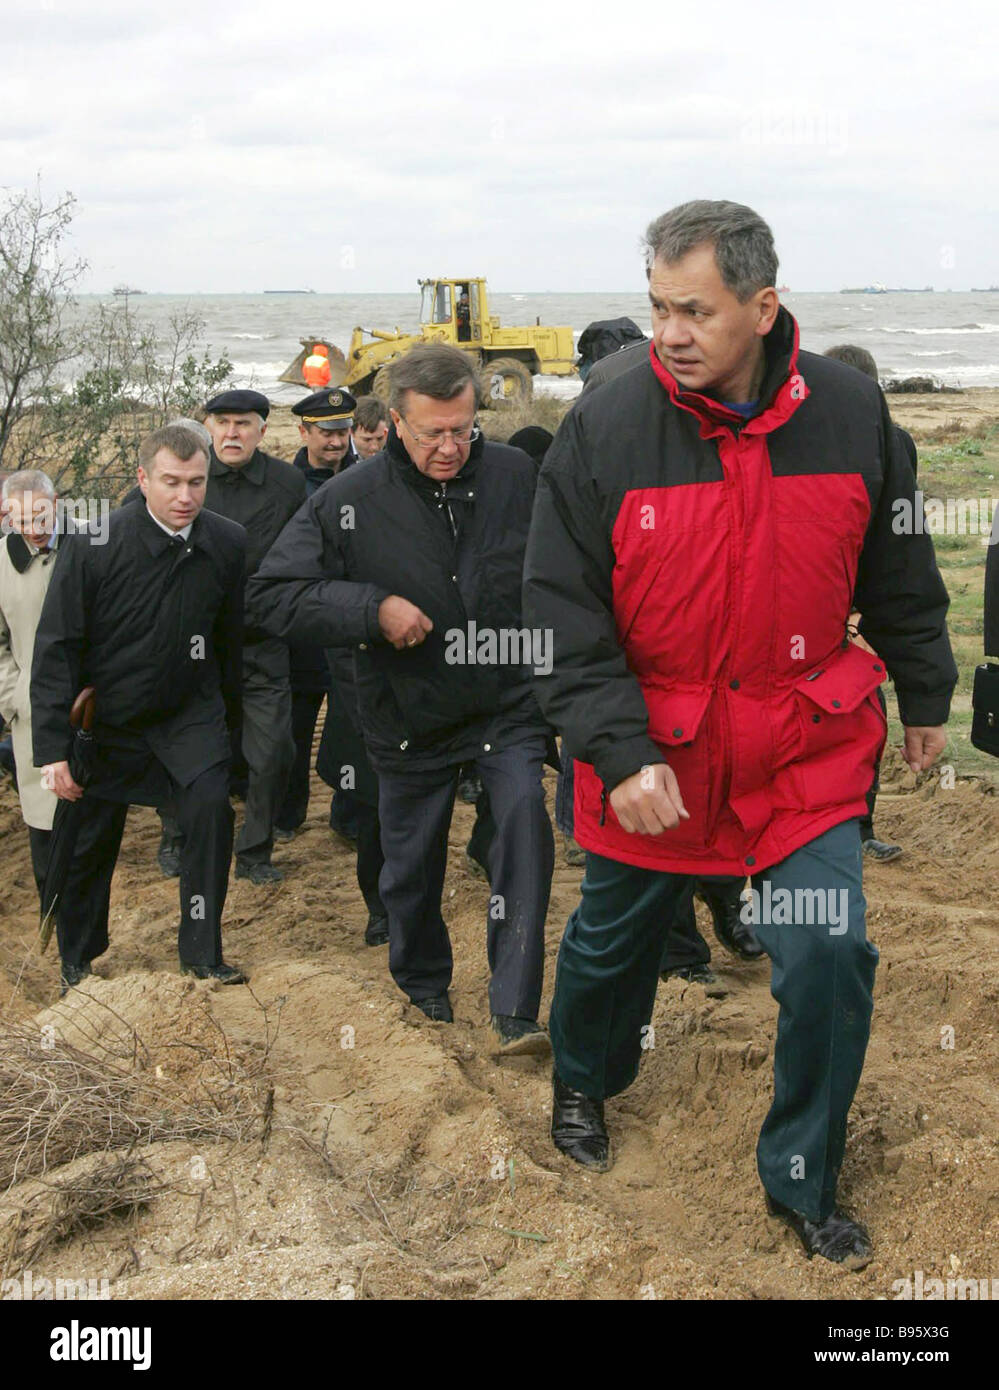 November 13 2007 Emergencies Minister Sergei Shoigu and Prime Minister Viktor Zubkov right to left inspecting the - Stock Image